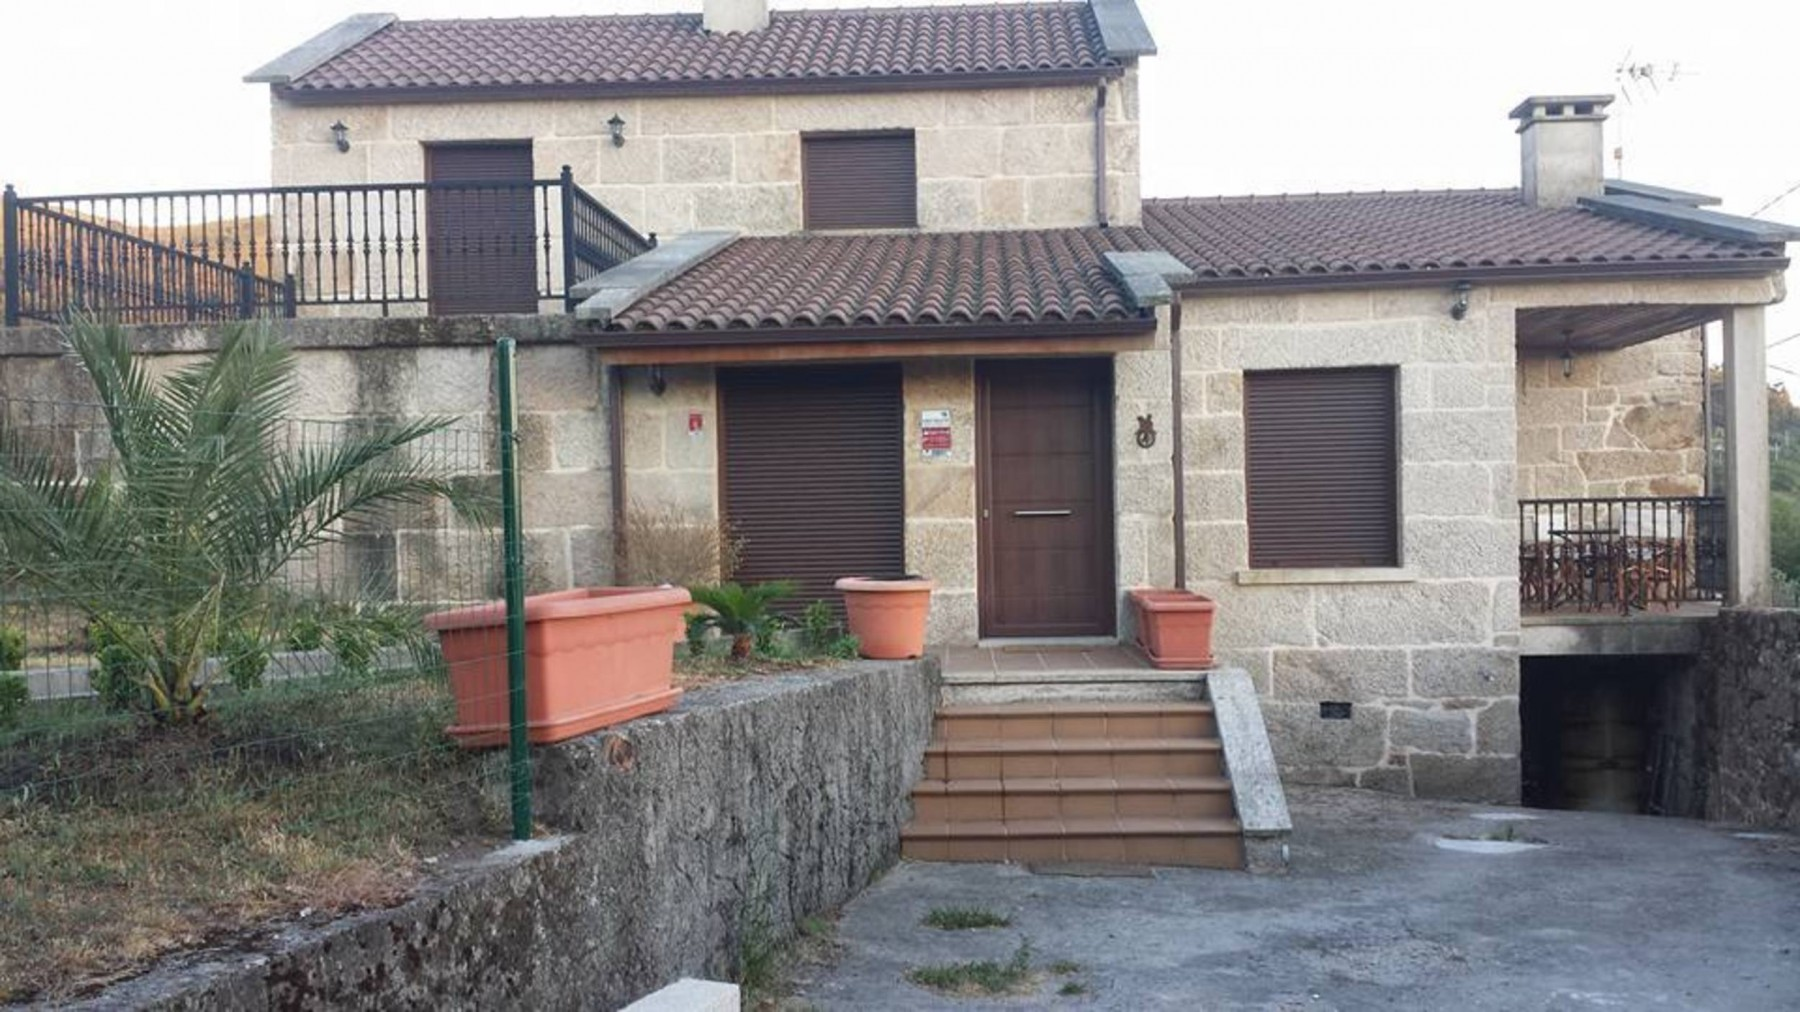 House - 3 Bedrooms with Pool - 103690 Ferienhaus  Galizien